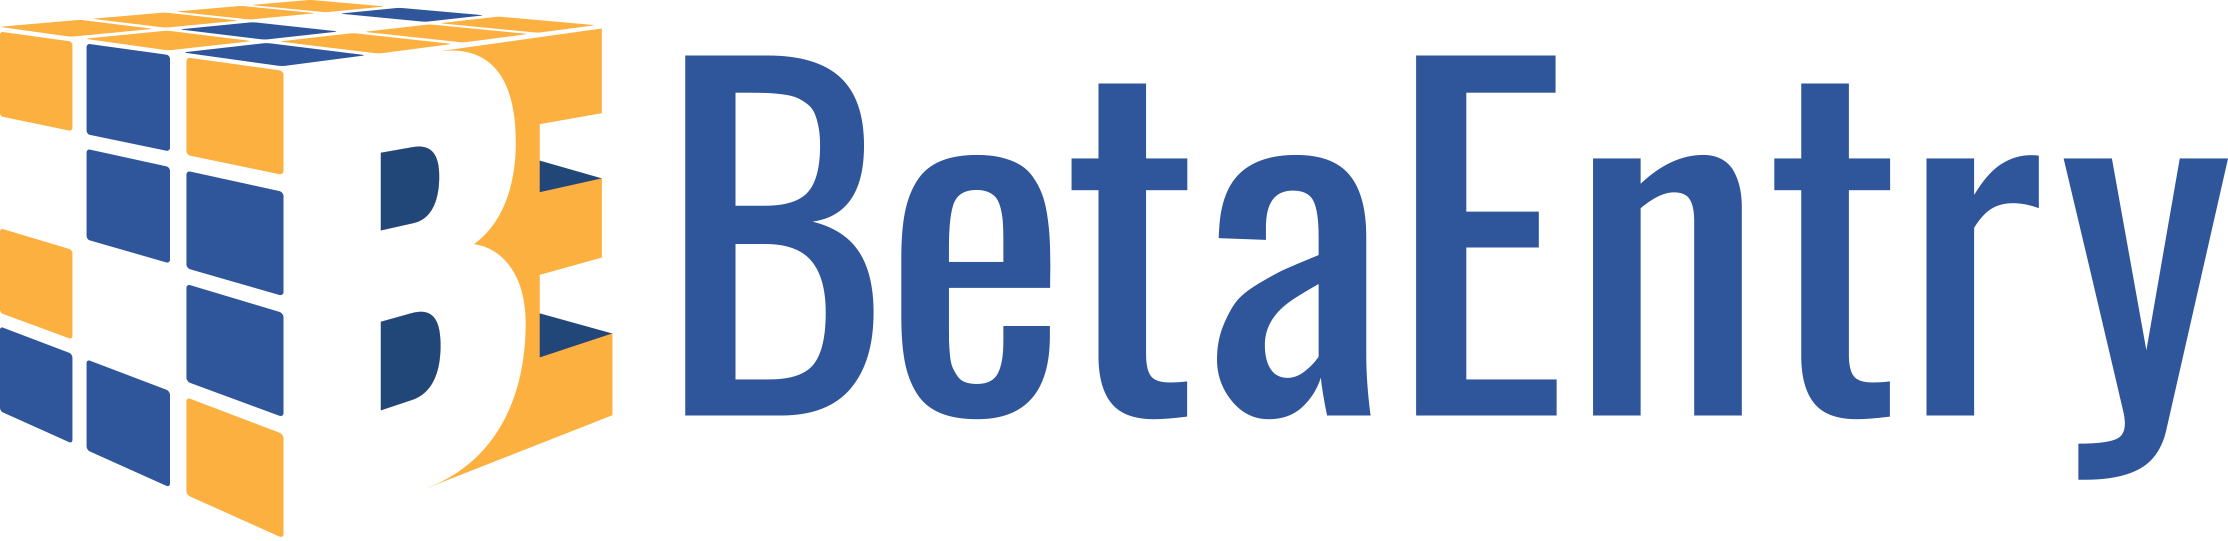 Beta Entry Bookkeeping